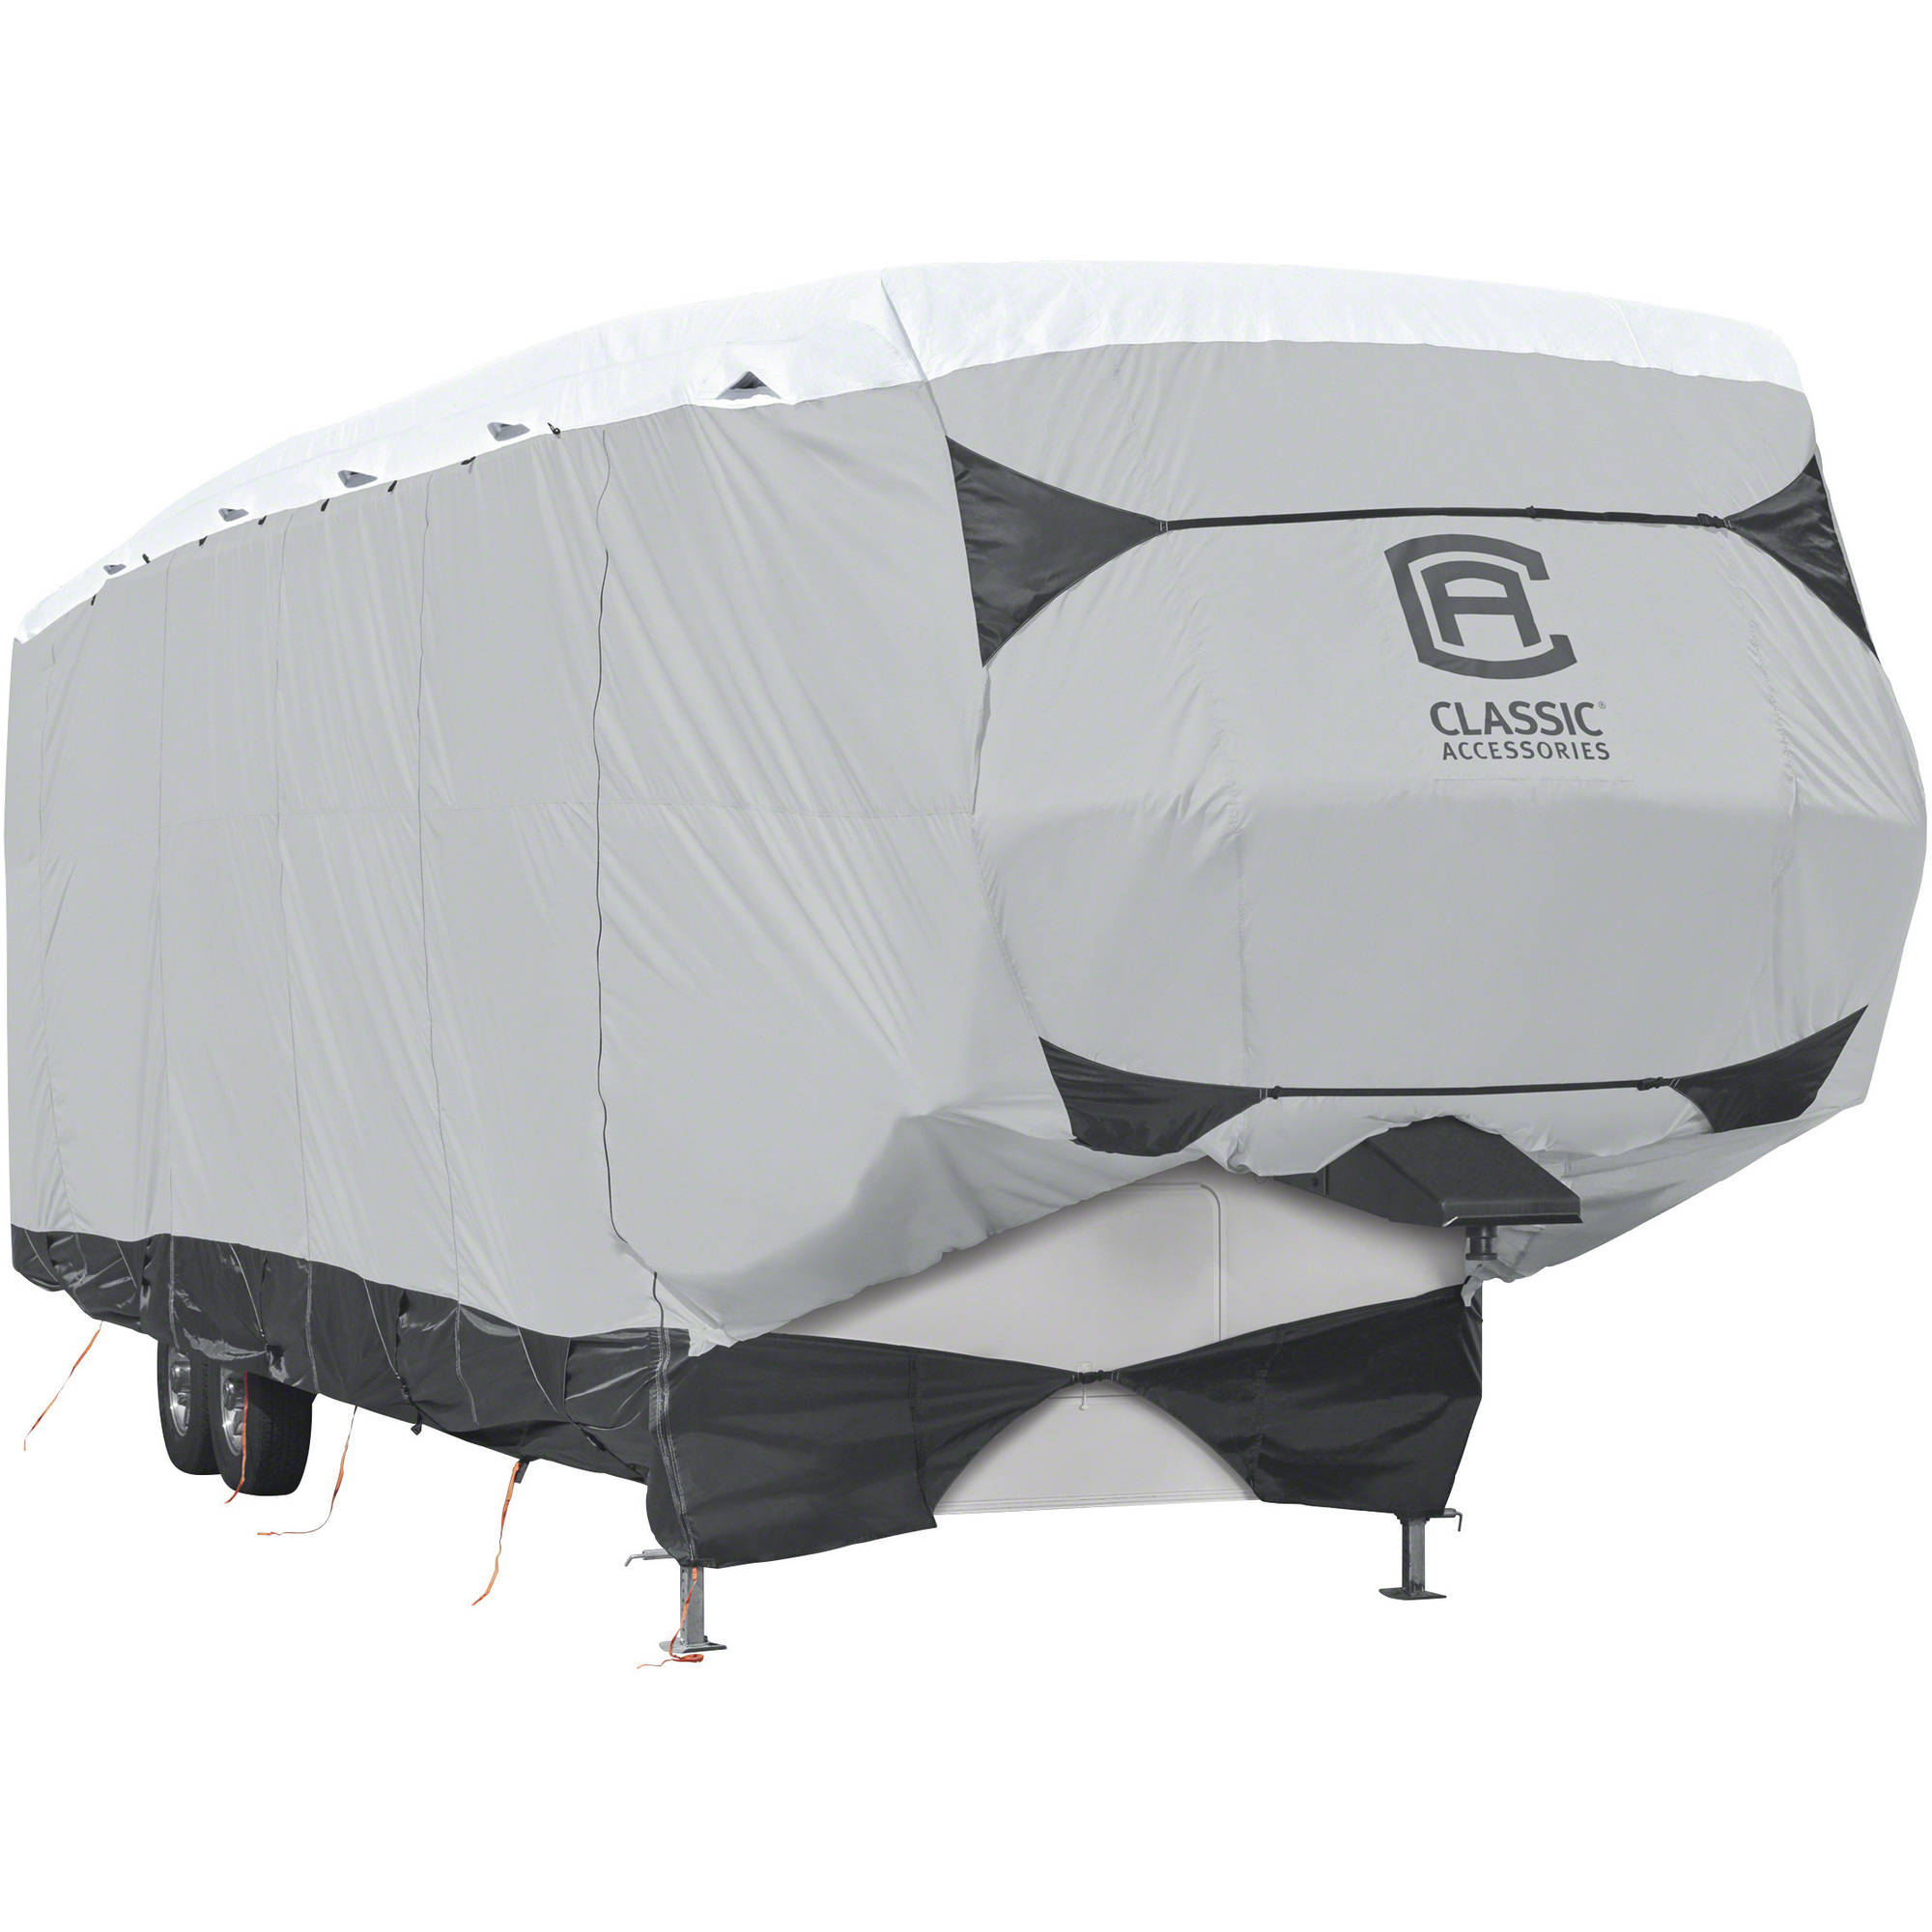 Classic Accessories OverDrive SkyShield Deluxe 5th Wheel Cover or Toy Hauler Cover, Fits 20' - 44' RVs